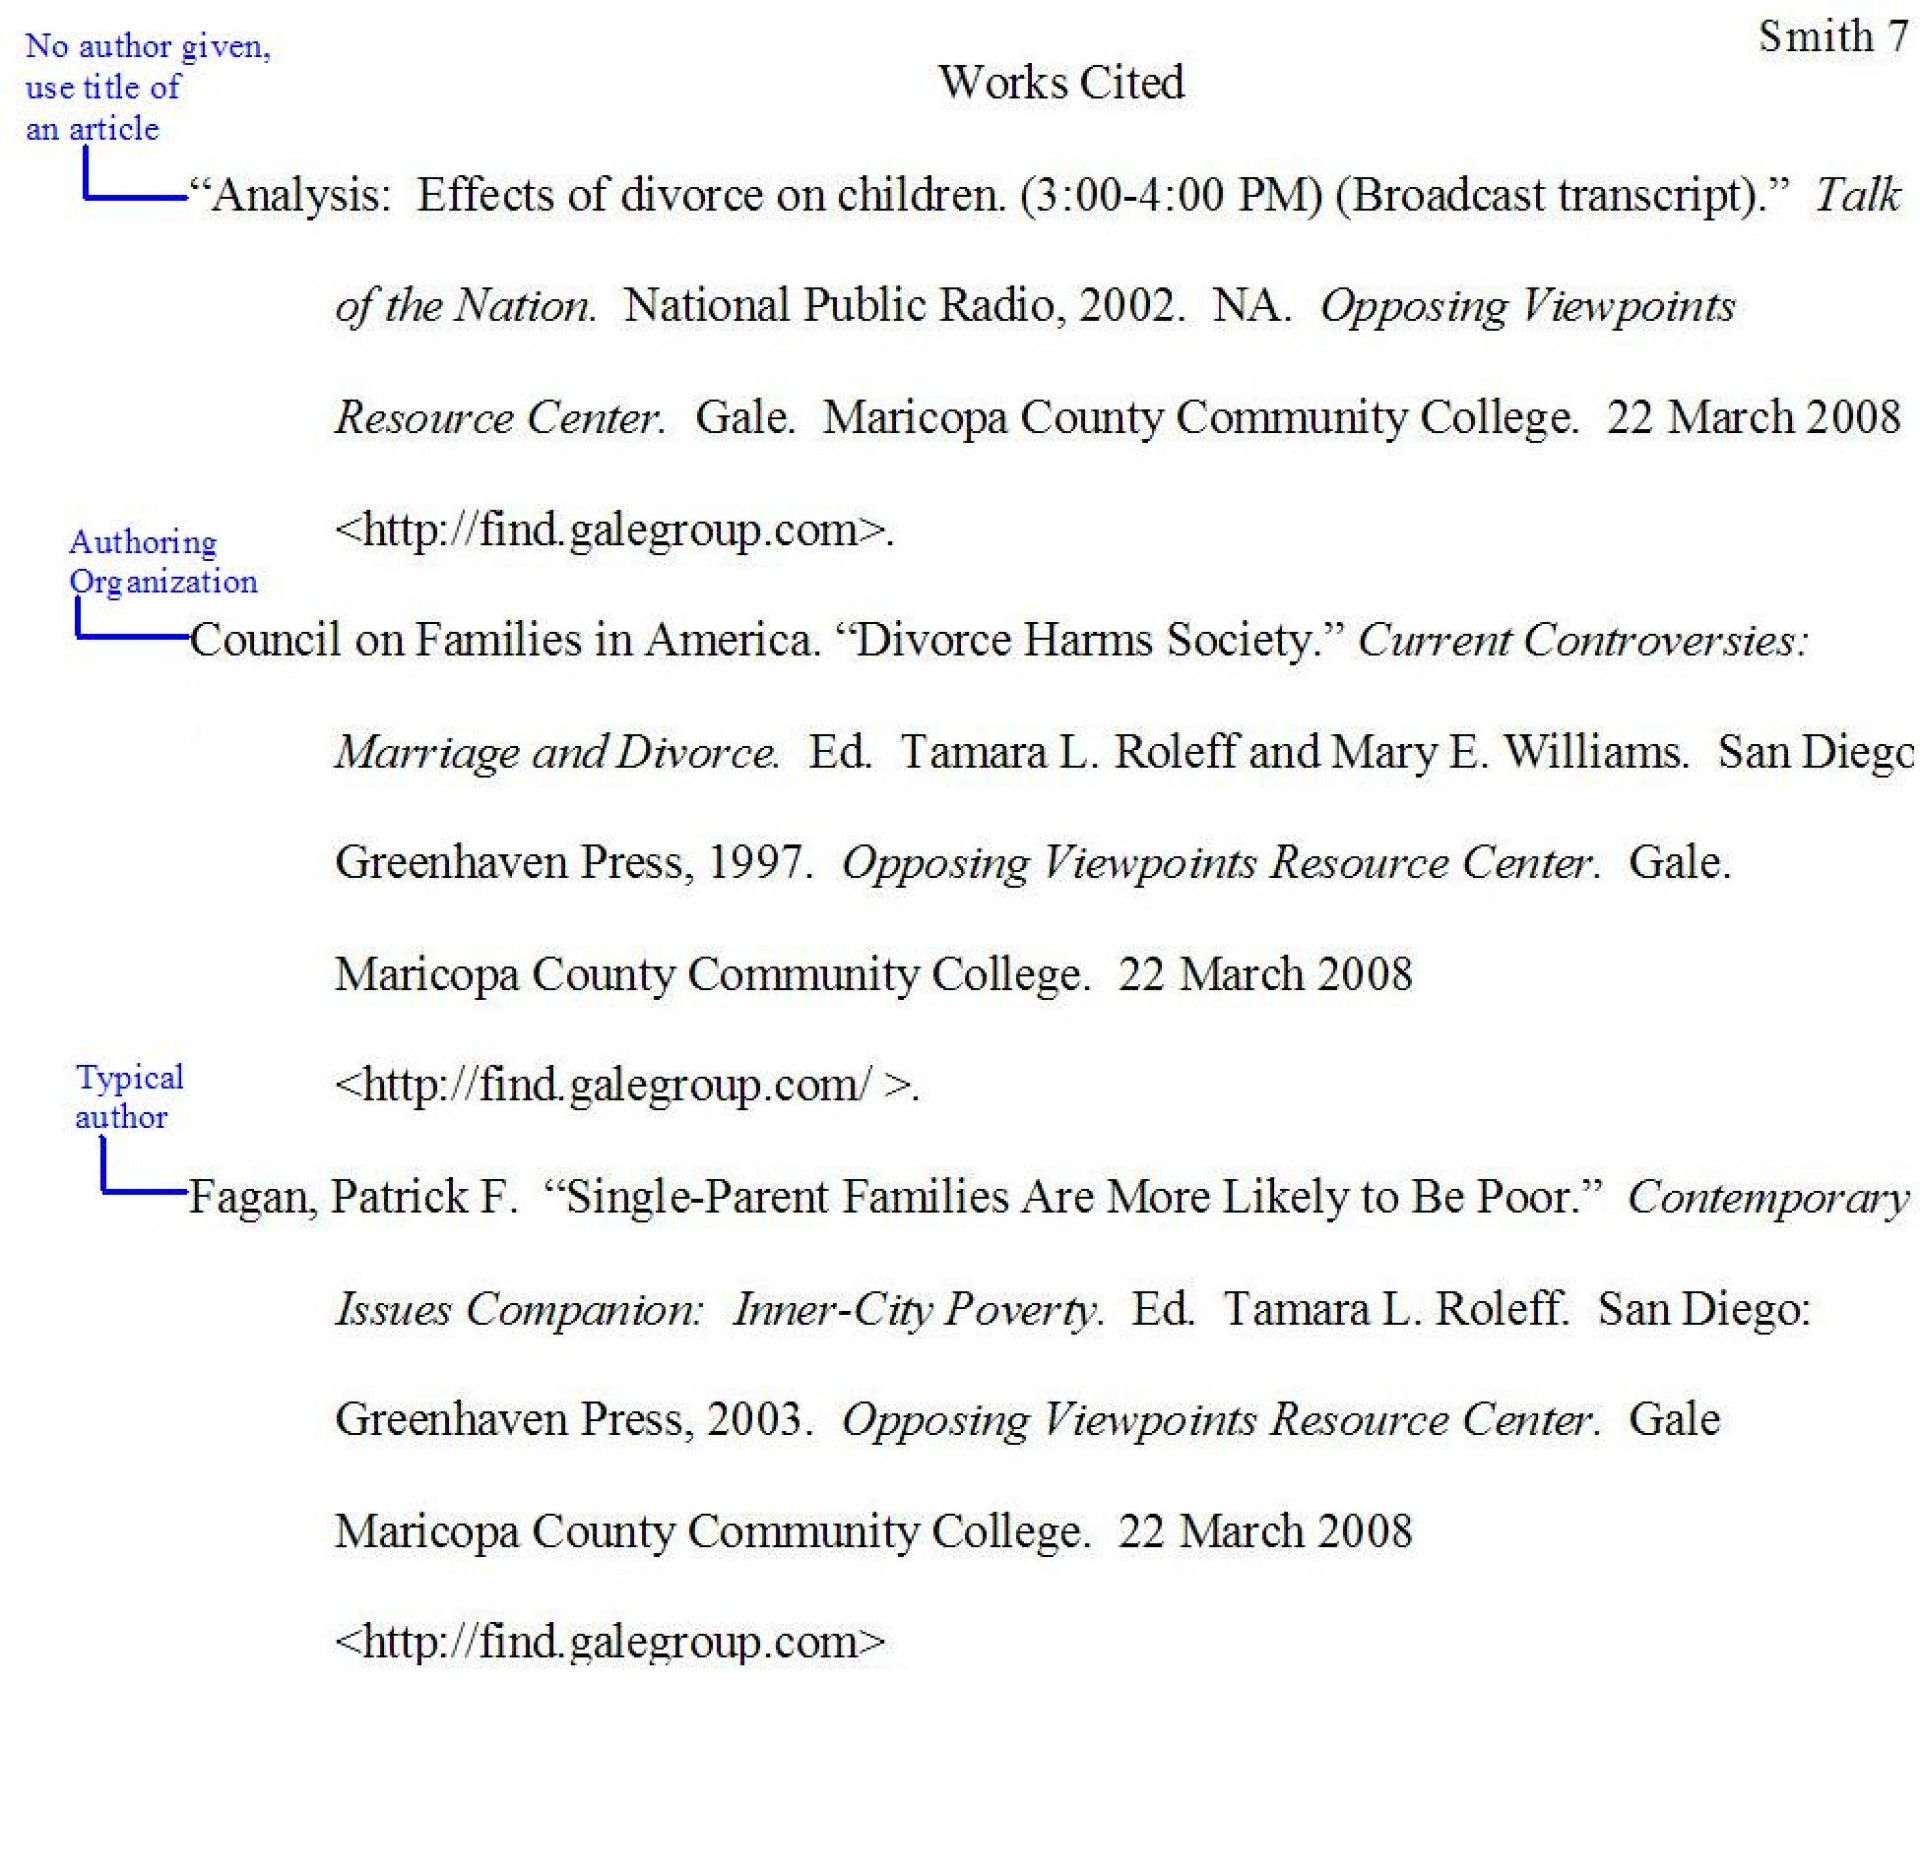 002 Work Cited Page For Research Paper Samplewrkctd Excellent Bibliography Citation 1920